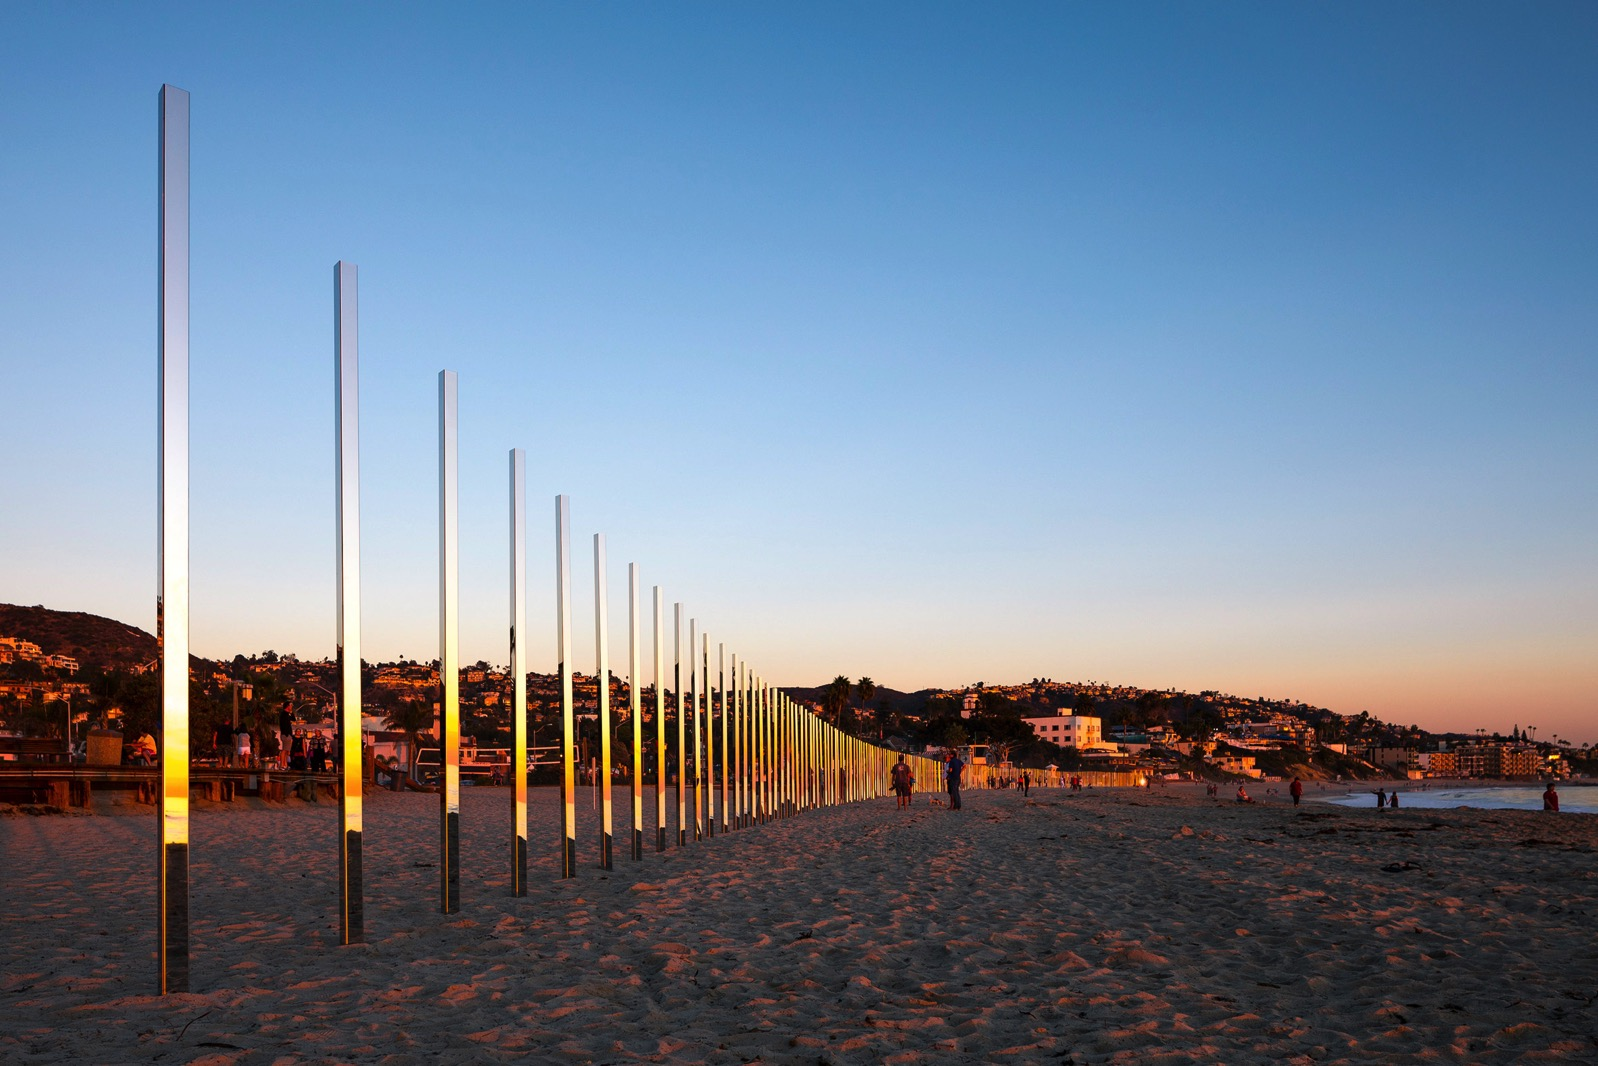 Quarter mile arc phillip k smith iii design installation california usa dezeen 2364 col 15